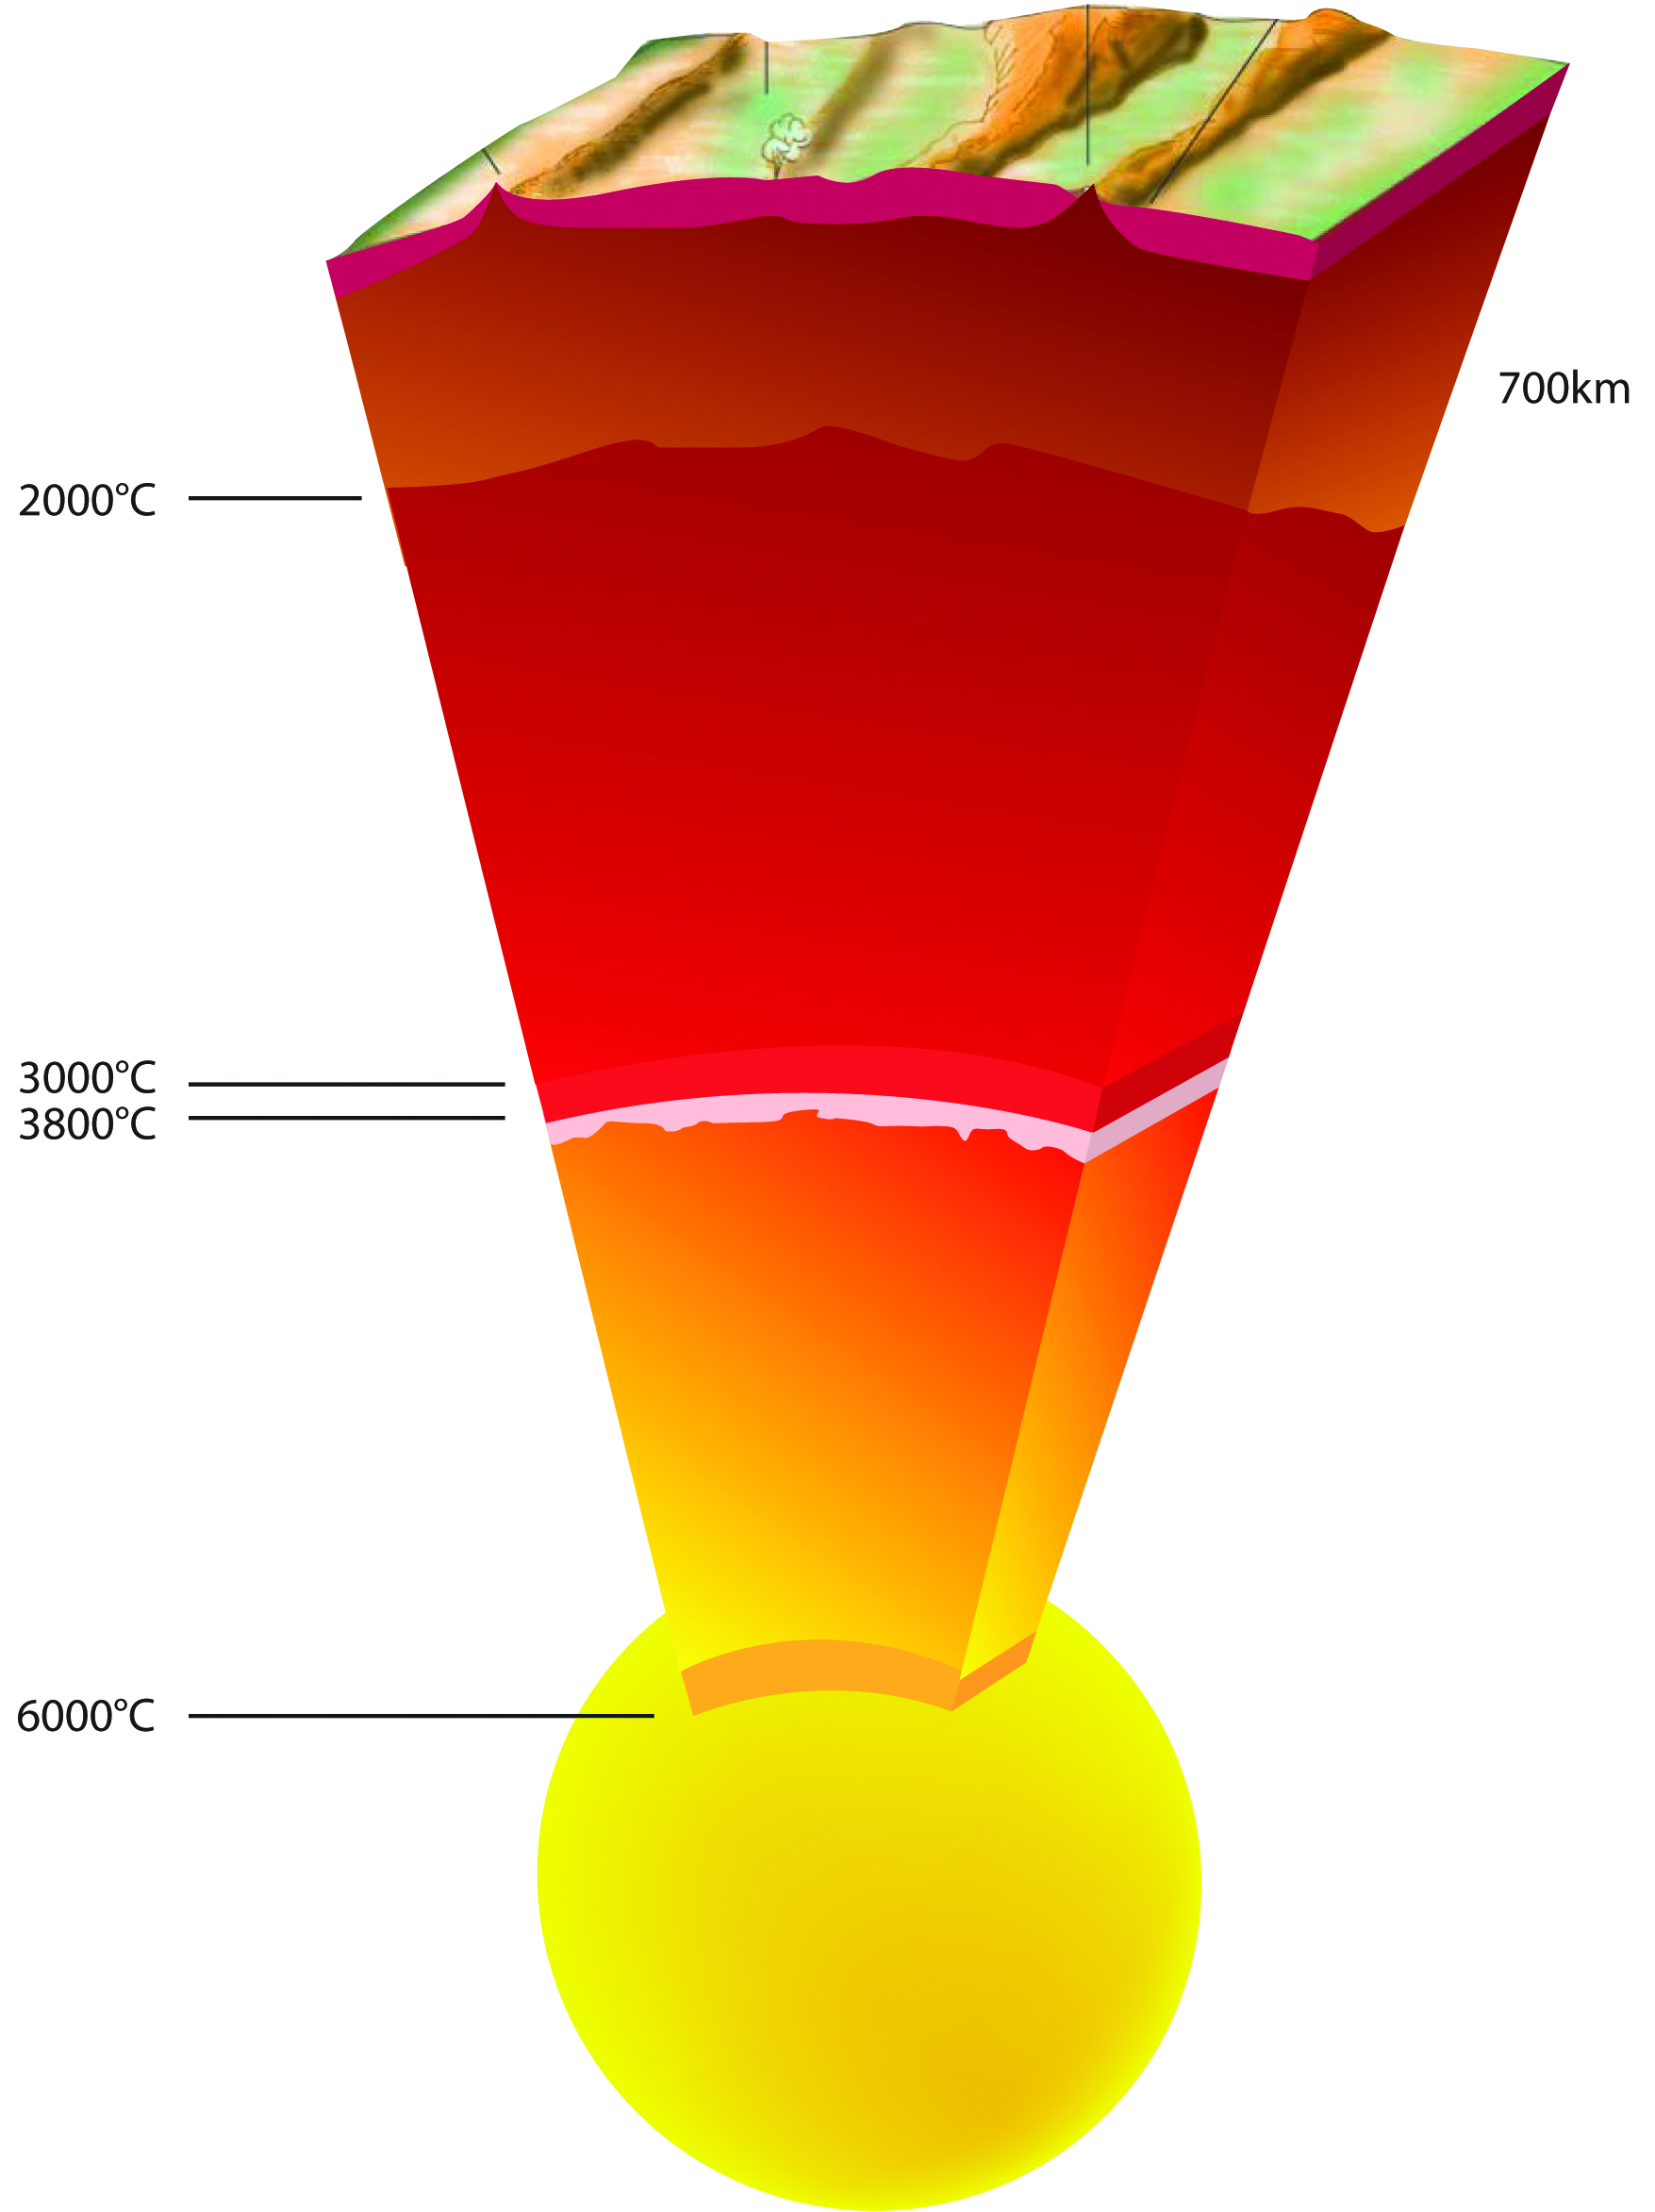 The Earth's center is 1,000 degrees - 1580.7KB